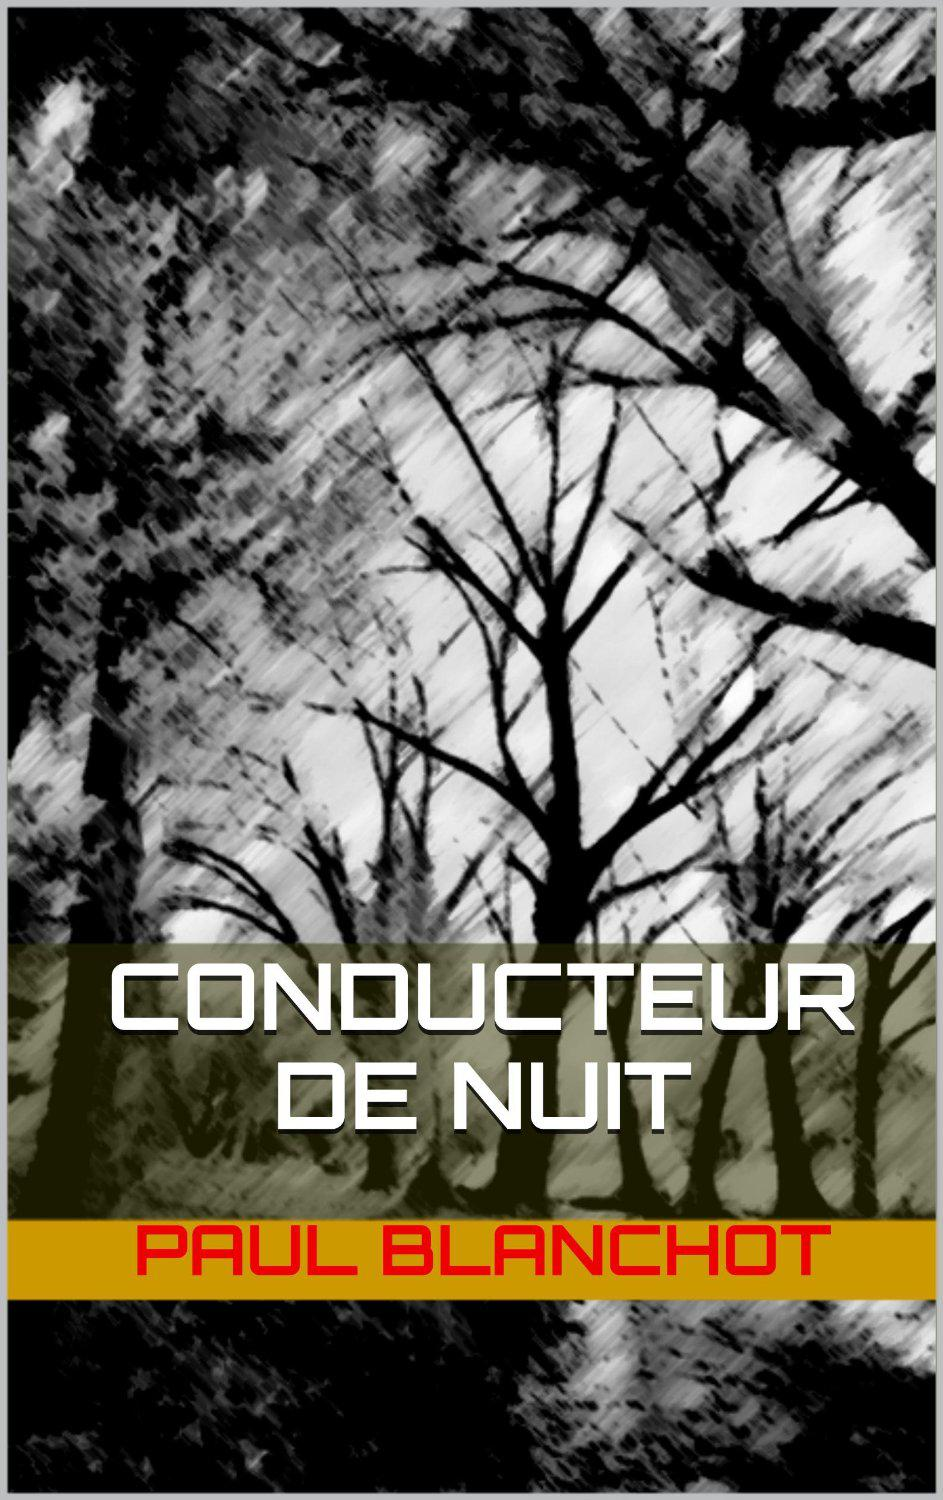 Paul Blanchot - Conducteur de nuit